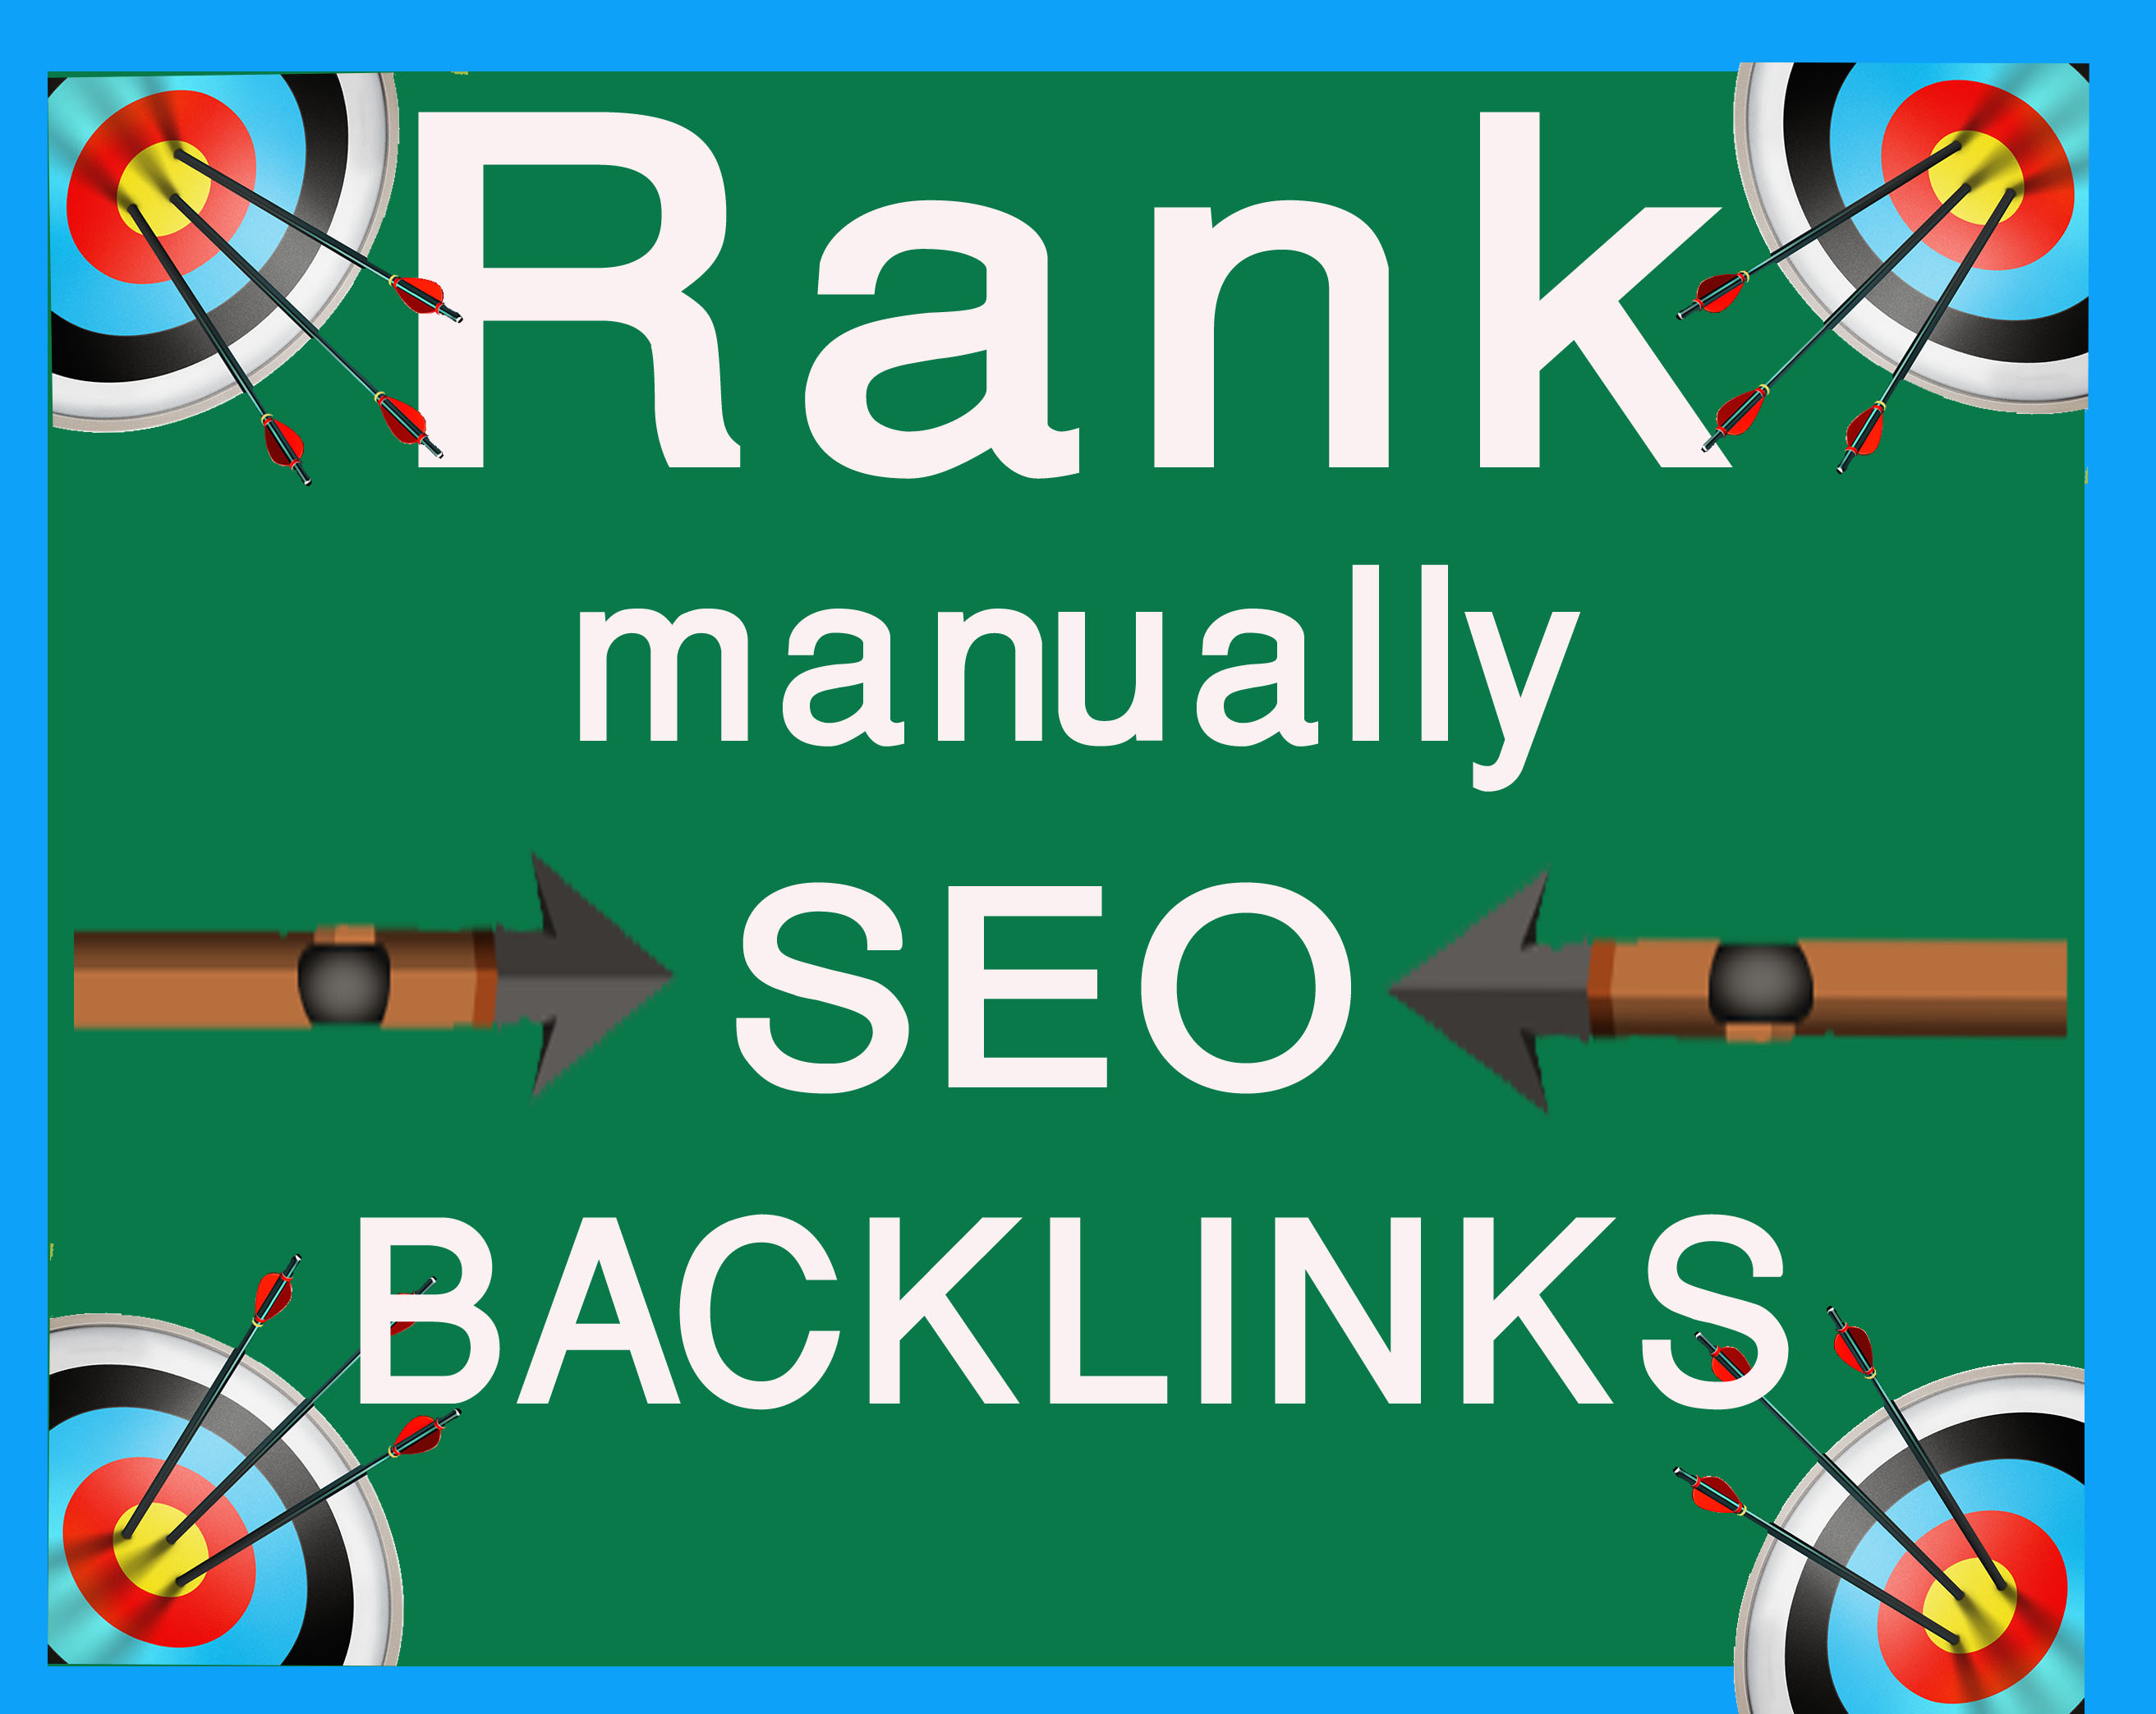 I will increase your Google ranking to 100 high quality live manual SEO backlinks in just 5 days.